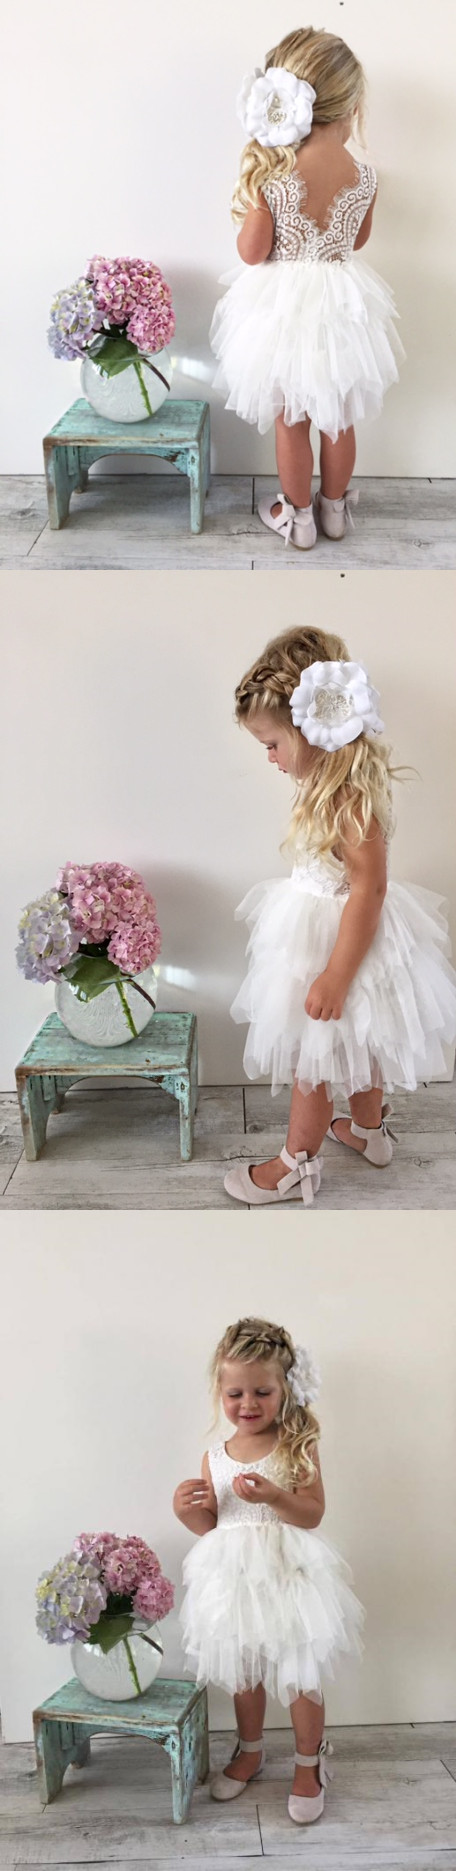 Beach wedding flower girl dresses  cute flower girl dress  flower girl dress short white lace